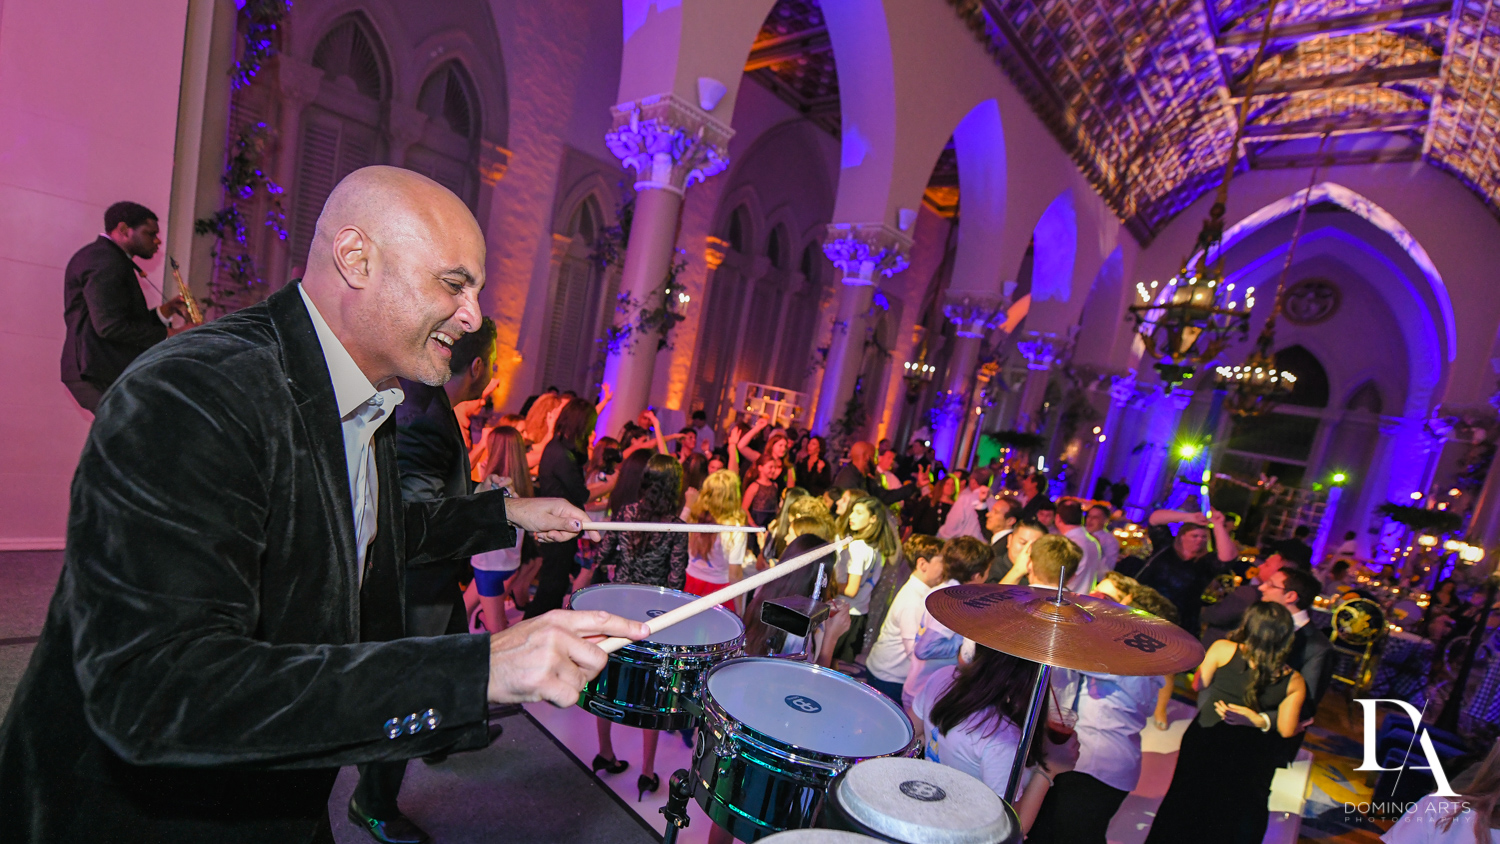 party entertainment at Madeline in Paris theme Bat Mitzvah at Boca Raton Resort and Club by Domino Arts Photography